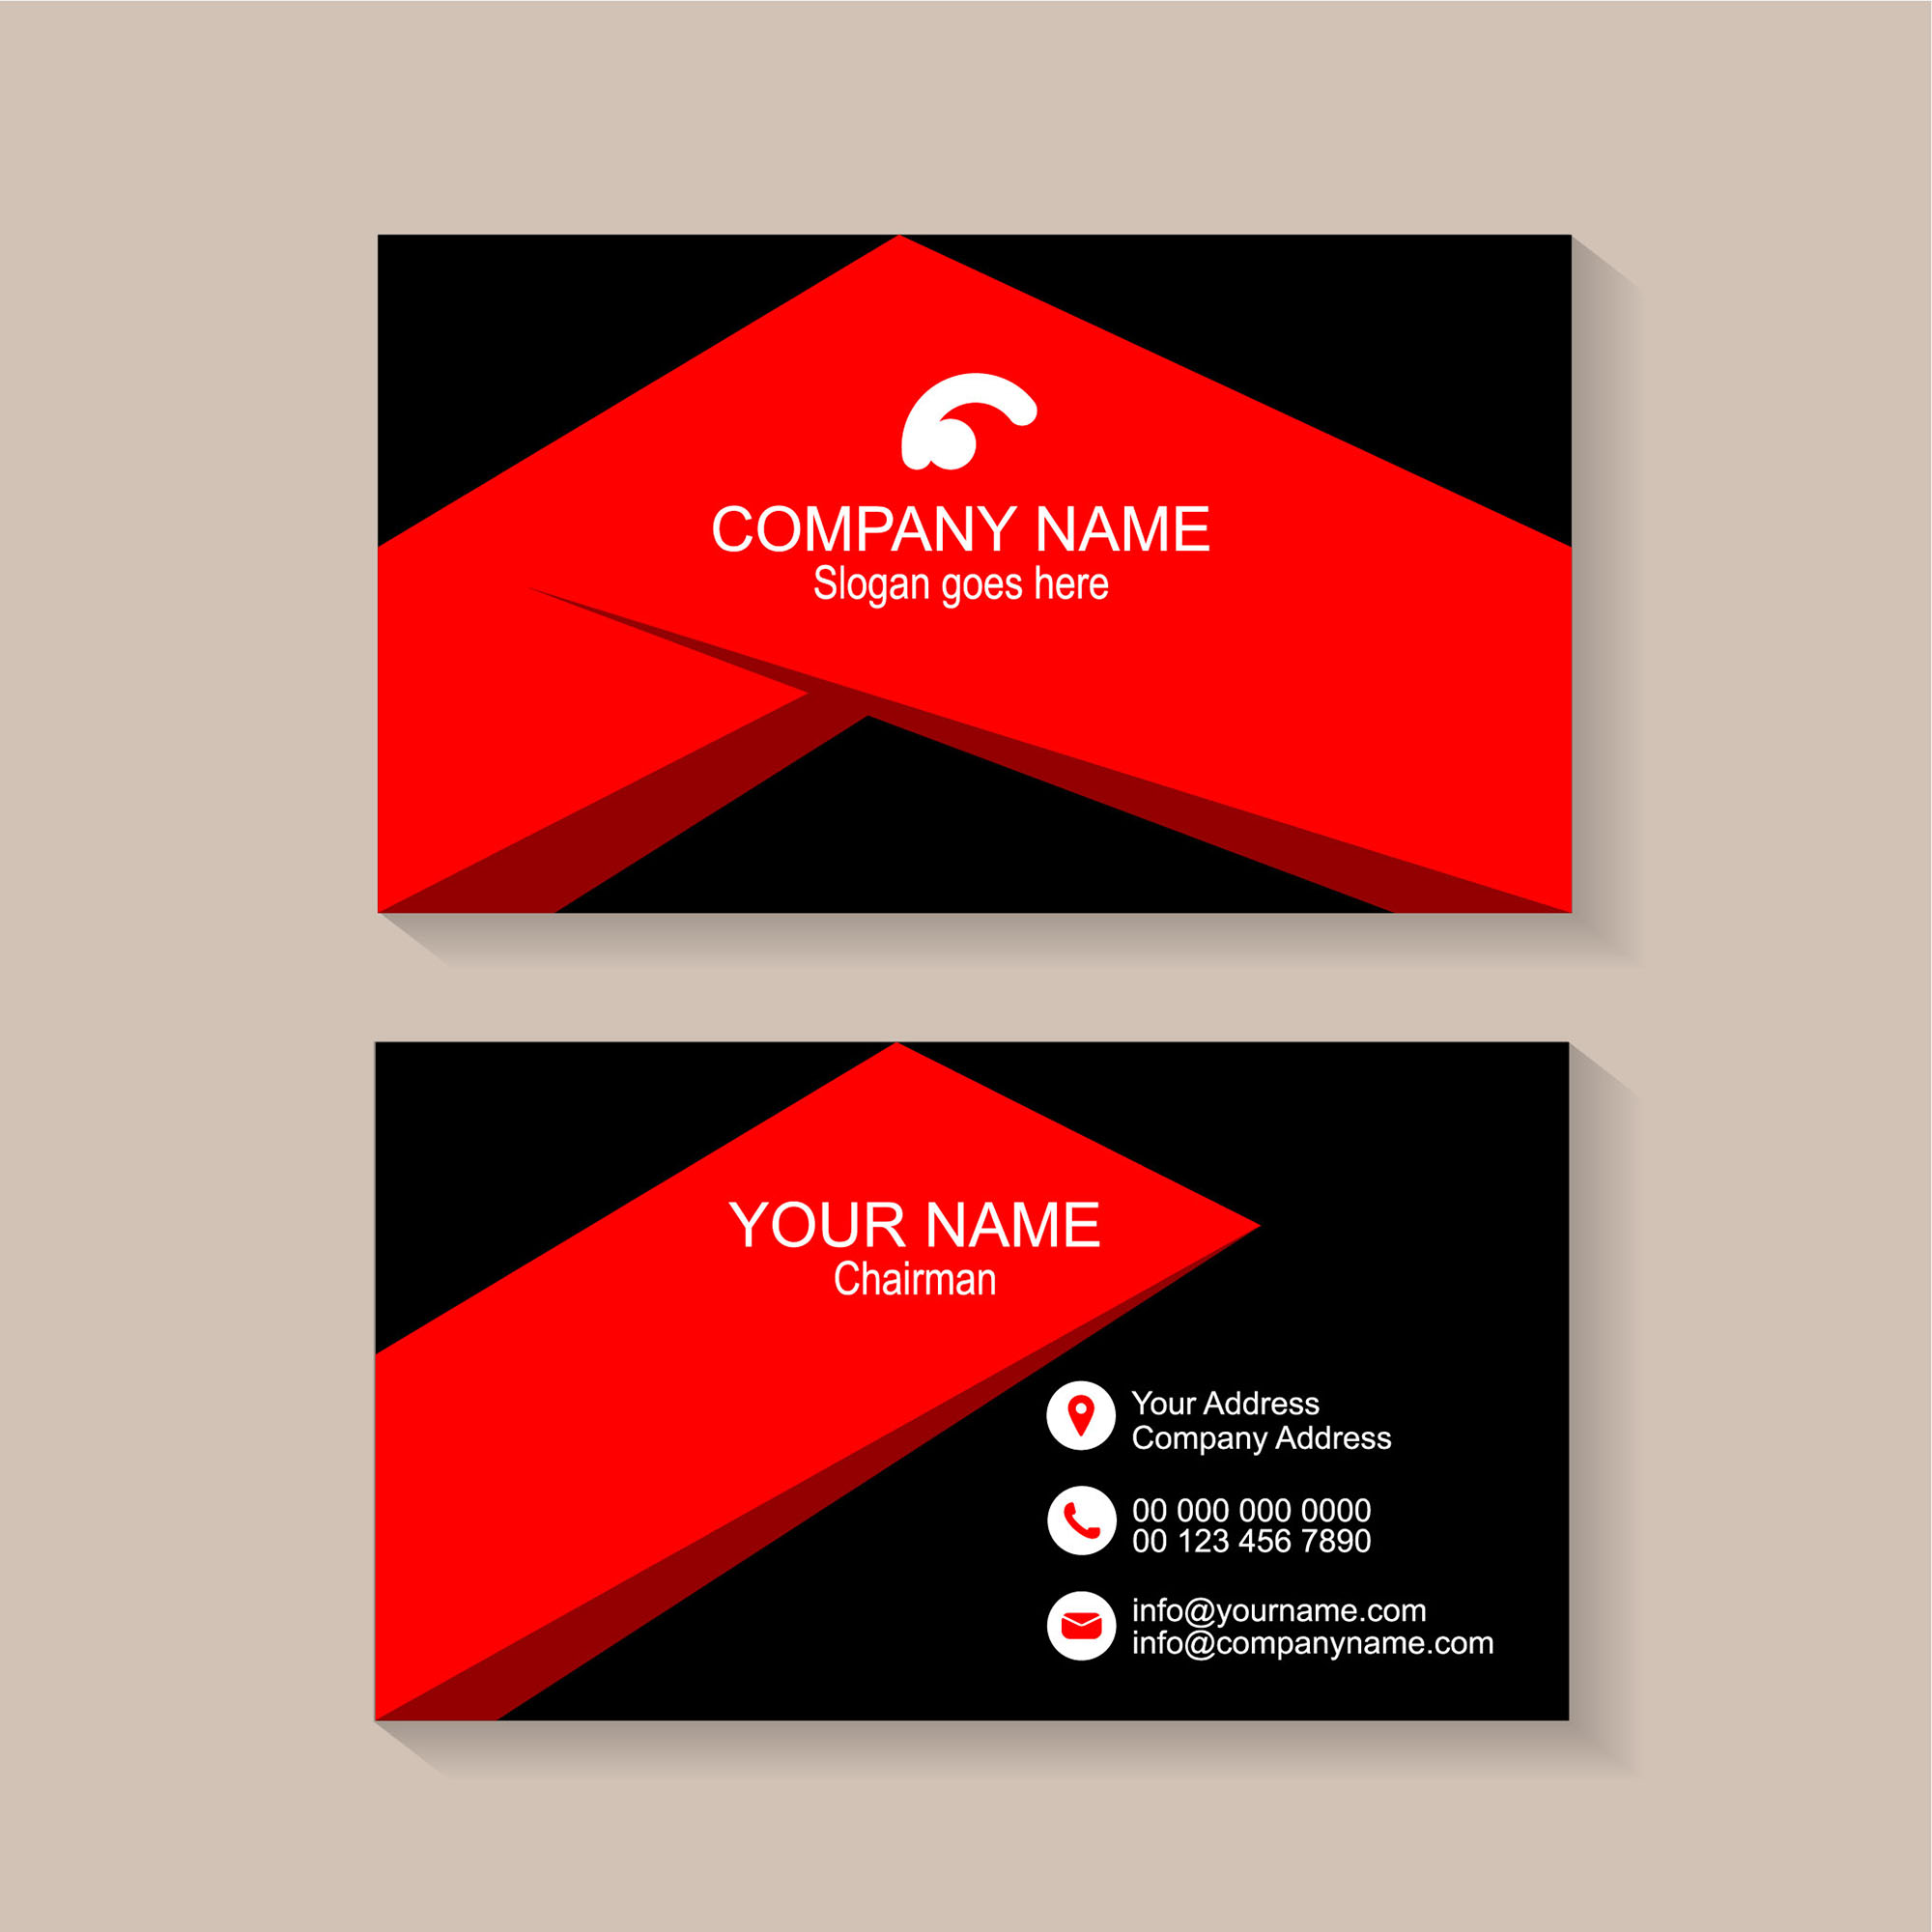 Business card template design free download wisxi business card business cards business card design business card template design templates fbccfo Image collections